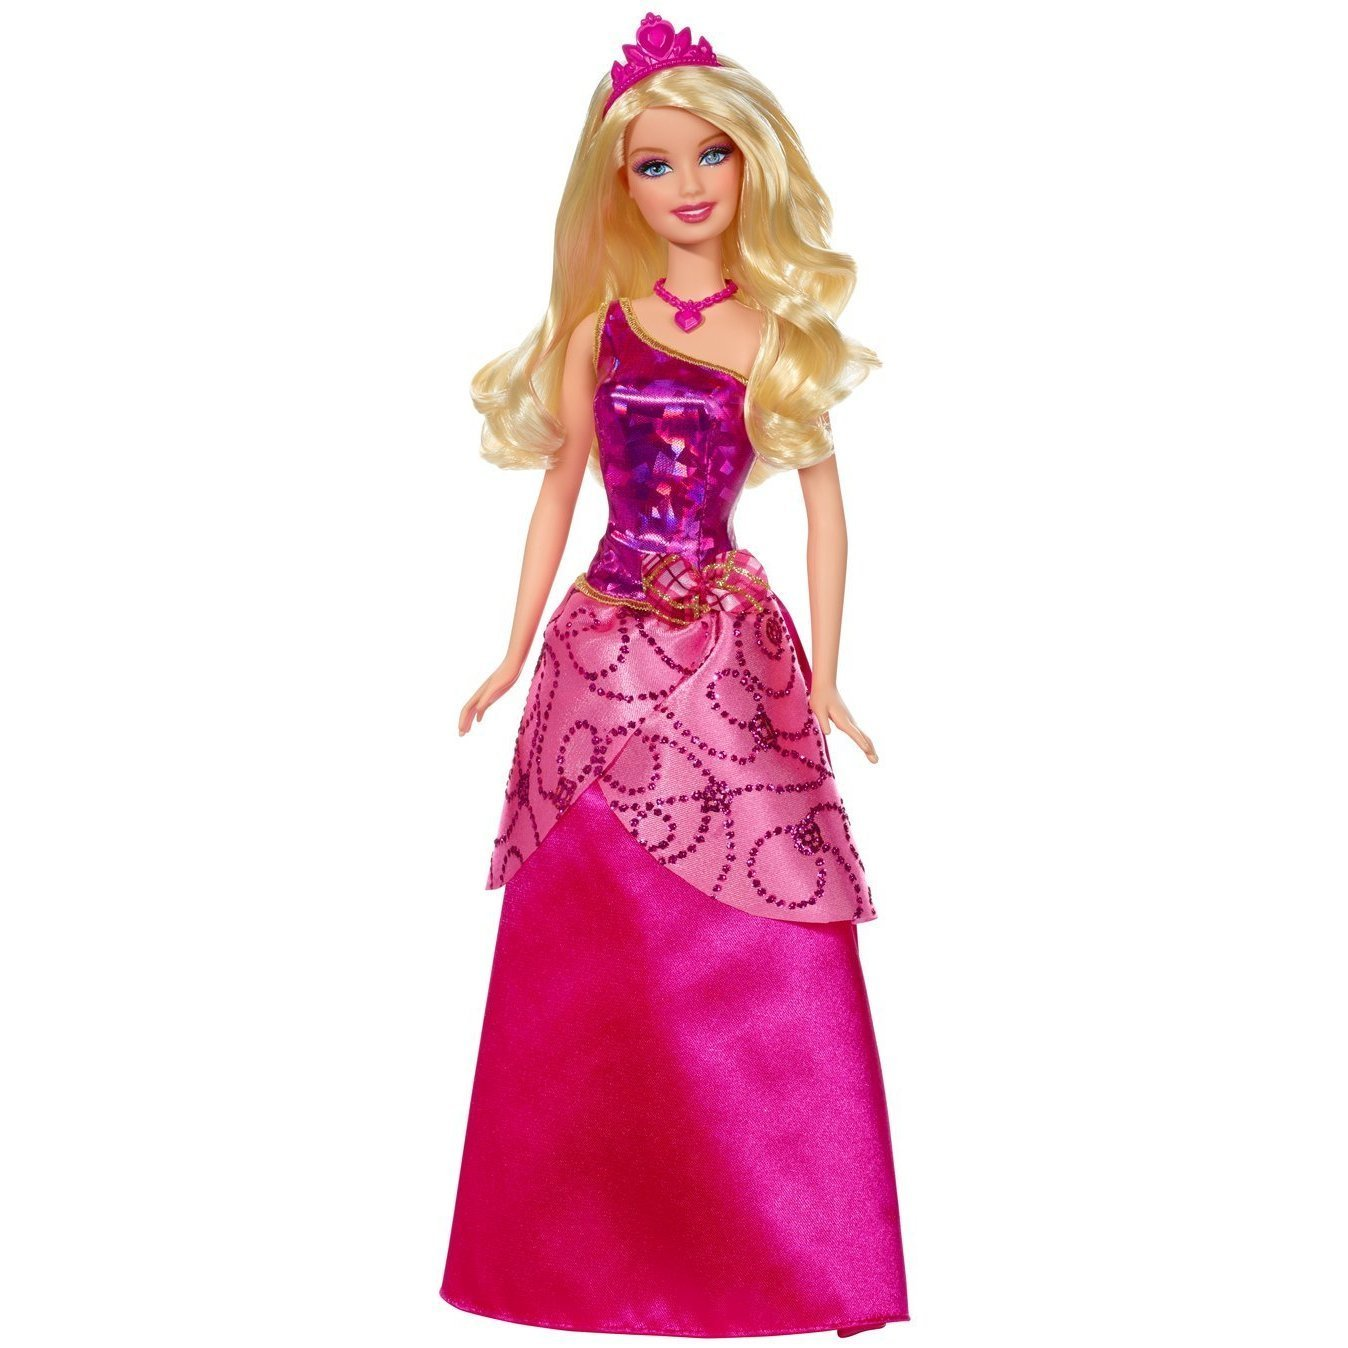 Barbie doll clipart hd.